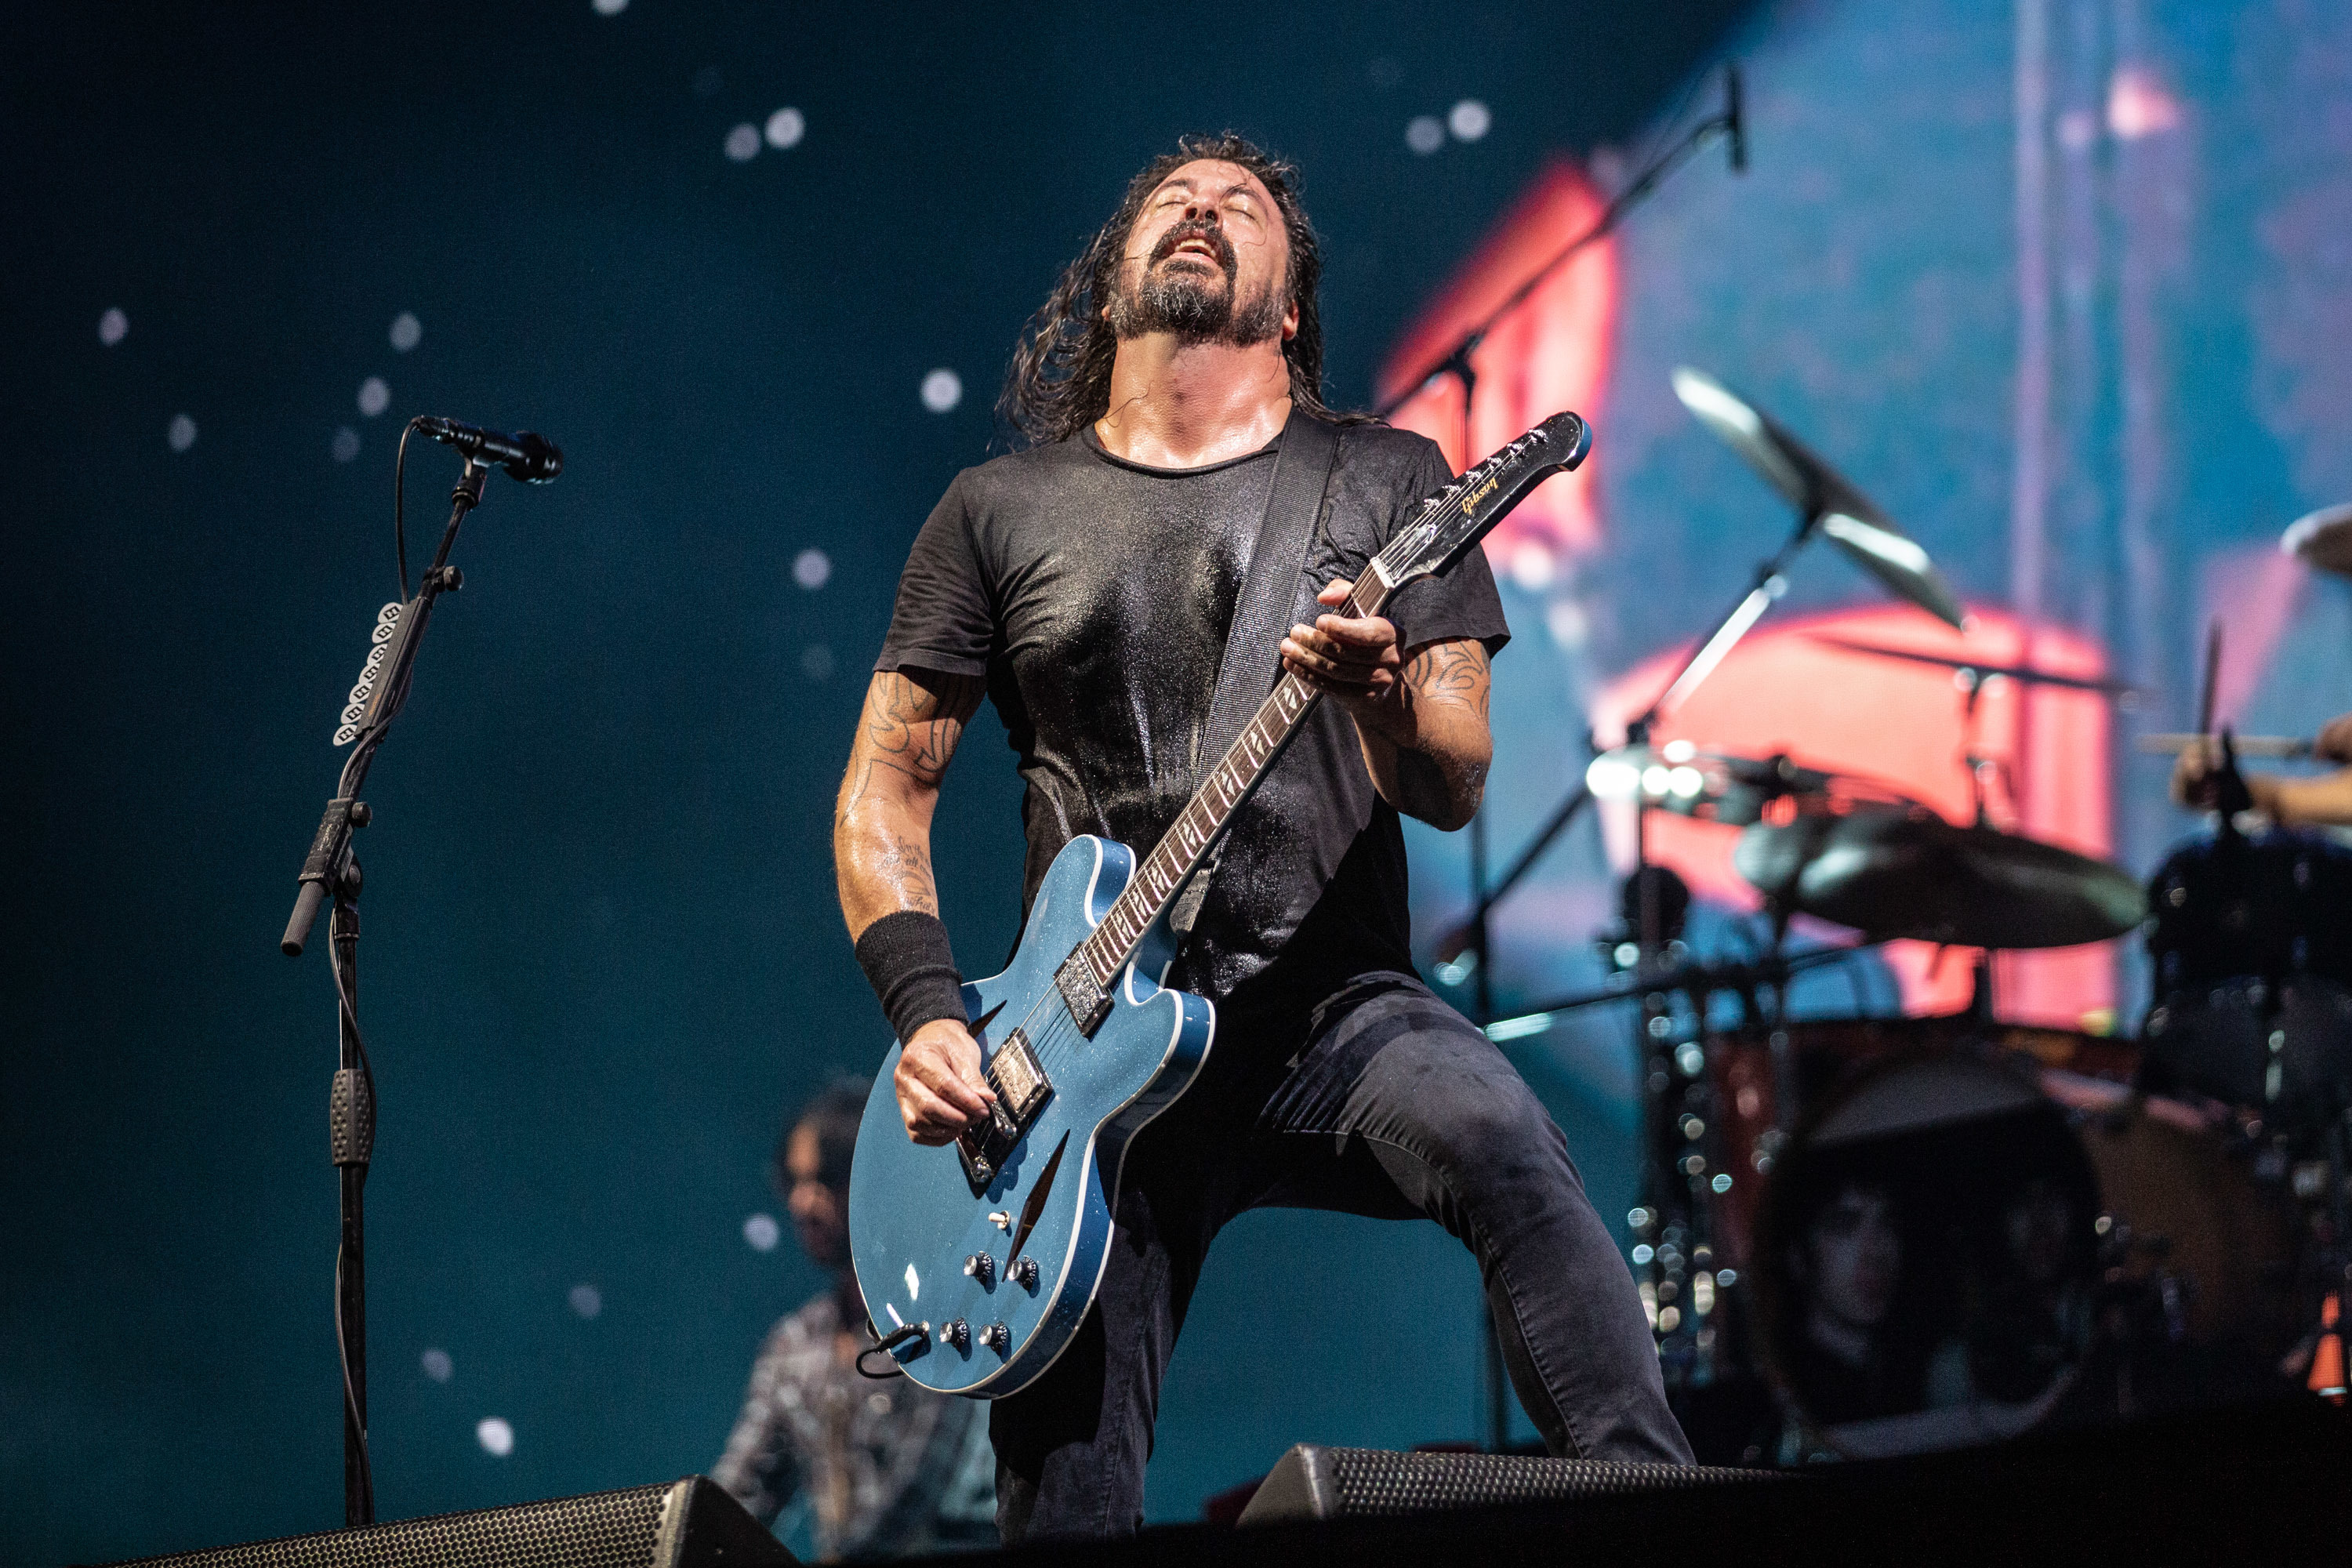 Foo Fighters close out Reading Festival 2019 with a monumental headline set